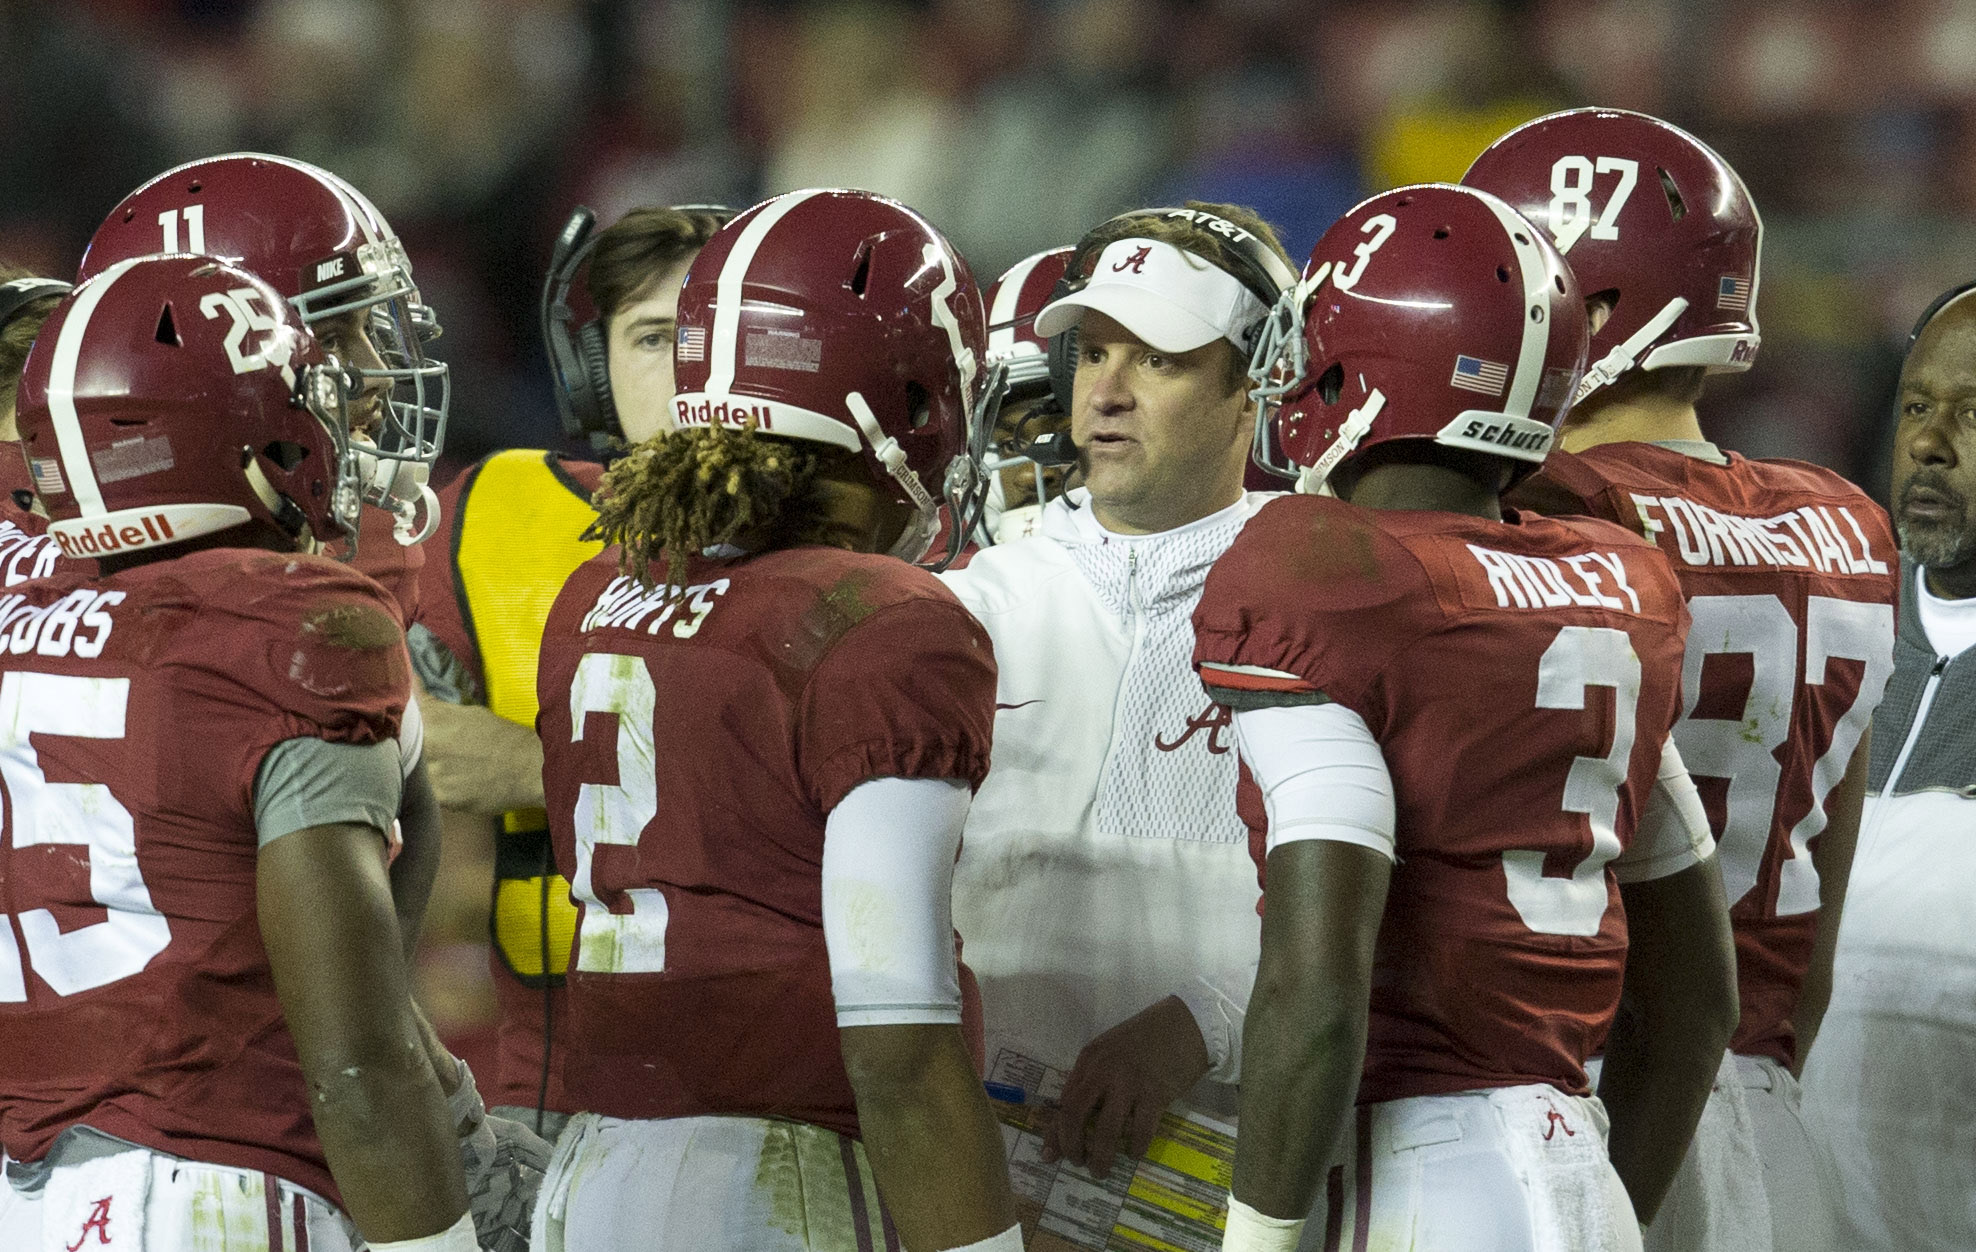 Nov 19, 2016; Tuscaloosa, AL, USA; Alabama Crimson Tide offensive coordinator Lane Kiffin talks to the offense during a time out during the game against Chattanooga Mocs at Bryant-Denny Stadium. Mandatory Credit: Marvin Gentry-USA TODAY Sports